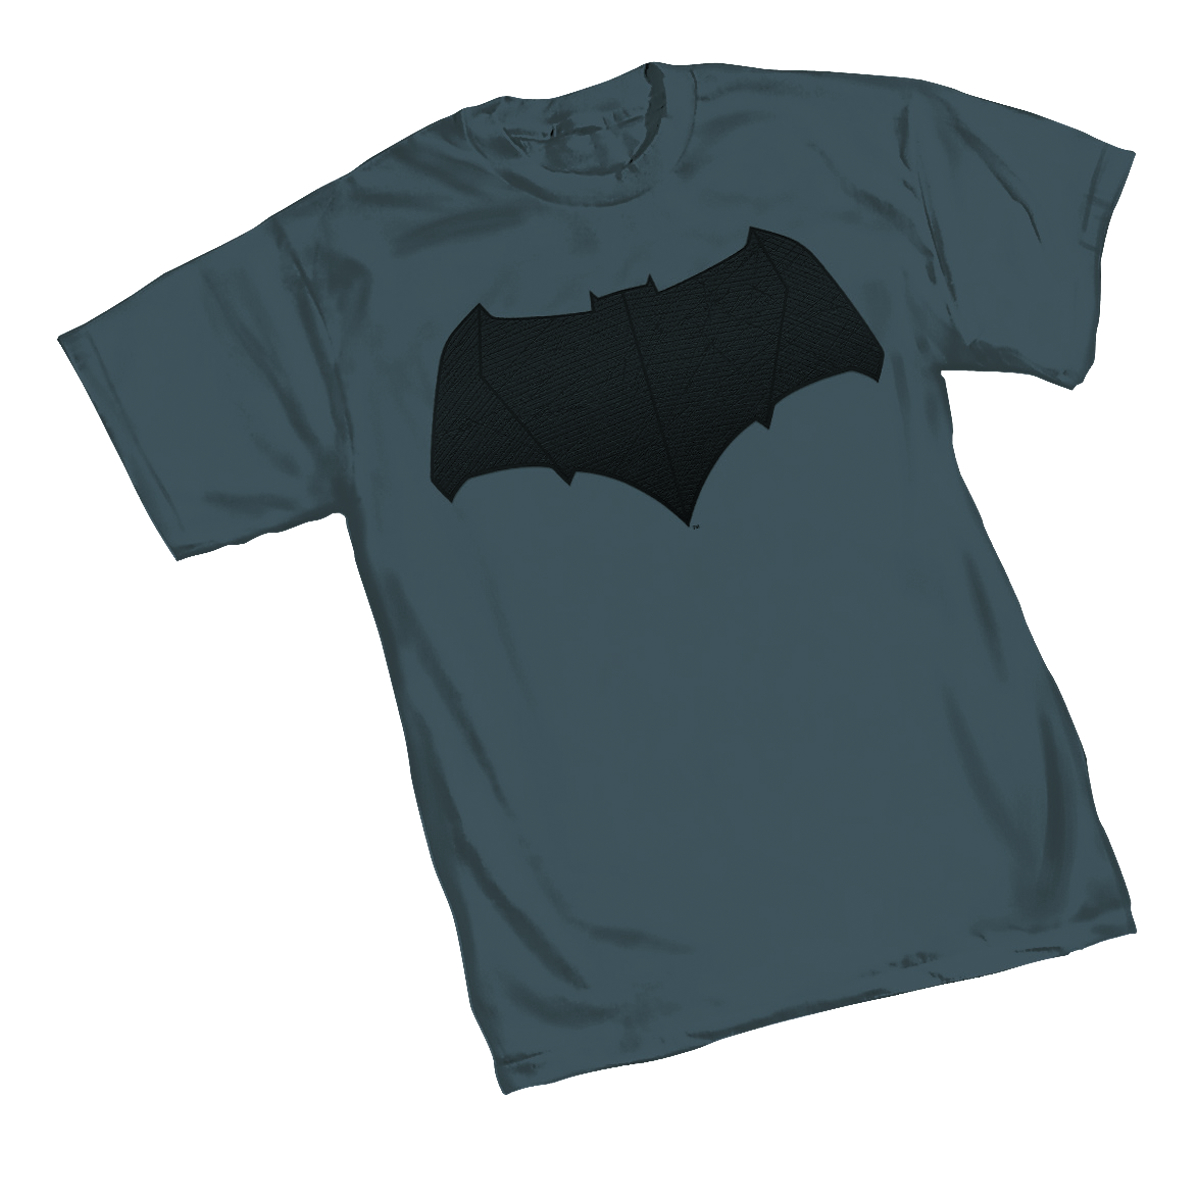 B V S BATMAN SYMBOL WOMENS T/S XL